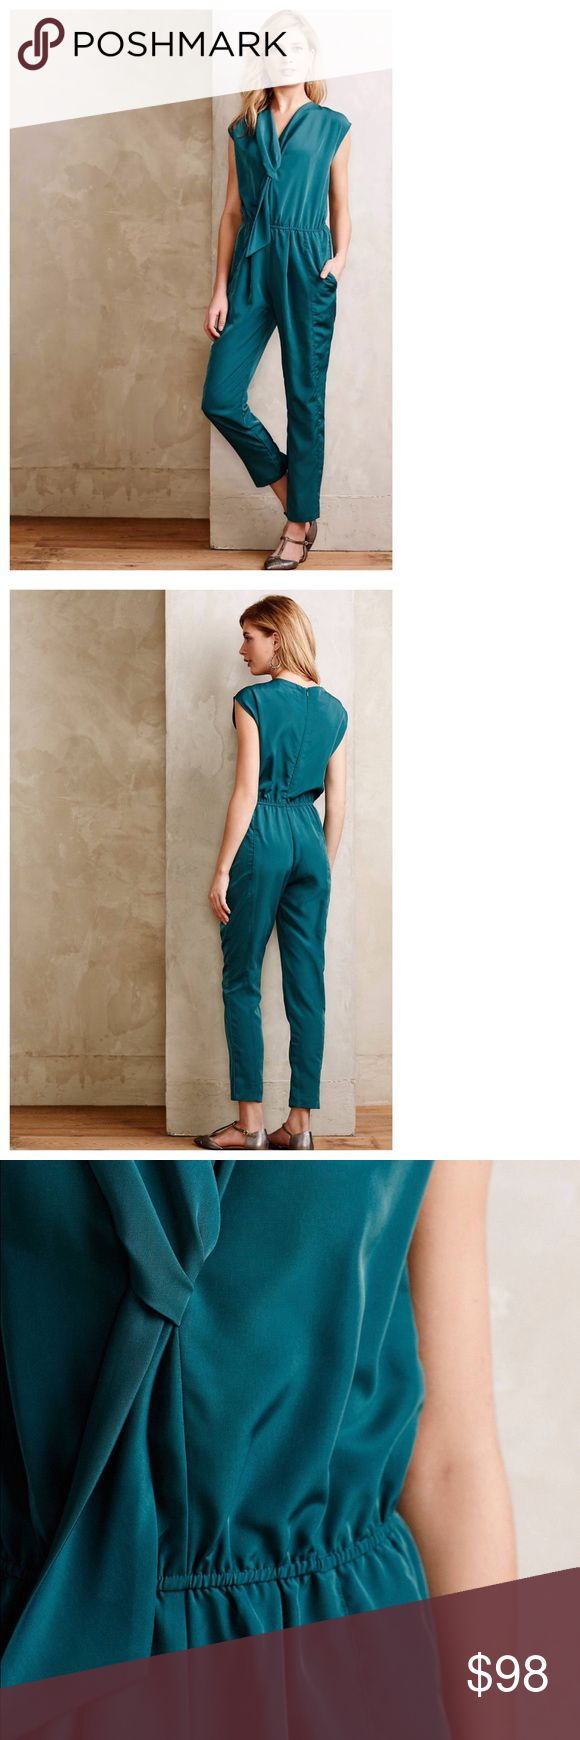 """Eva Franco Teal Green Jumper in Petite 6P Make me an offer! This beautiful jumpsuit/romper has only been worn a few times and is in great condition. The gathered waist is very flattering with a belt, and the teal green/blue is a great color for spring or fall. The cut is made just for petite figures, so if you're 5'4"""" tall or less, you're in luck!  The tag reads """"dry clean,"""" but it's a polyester crepe fabric that you can definitely wash by hand or on gentle cycle with cold water if you…"""